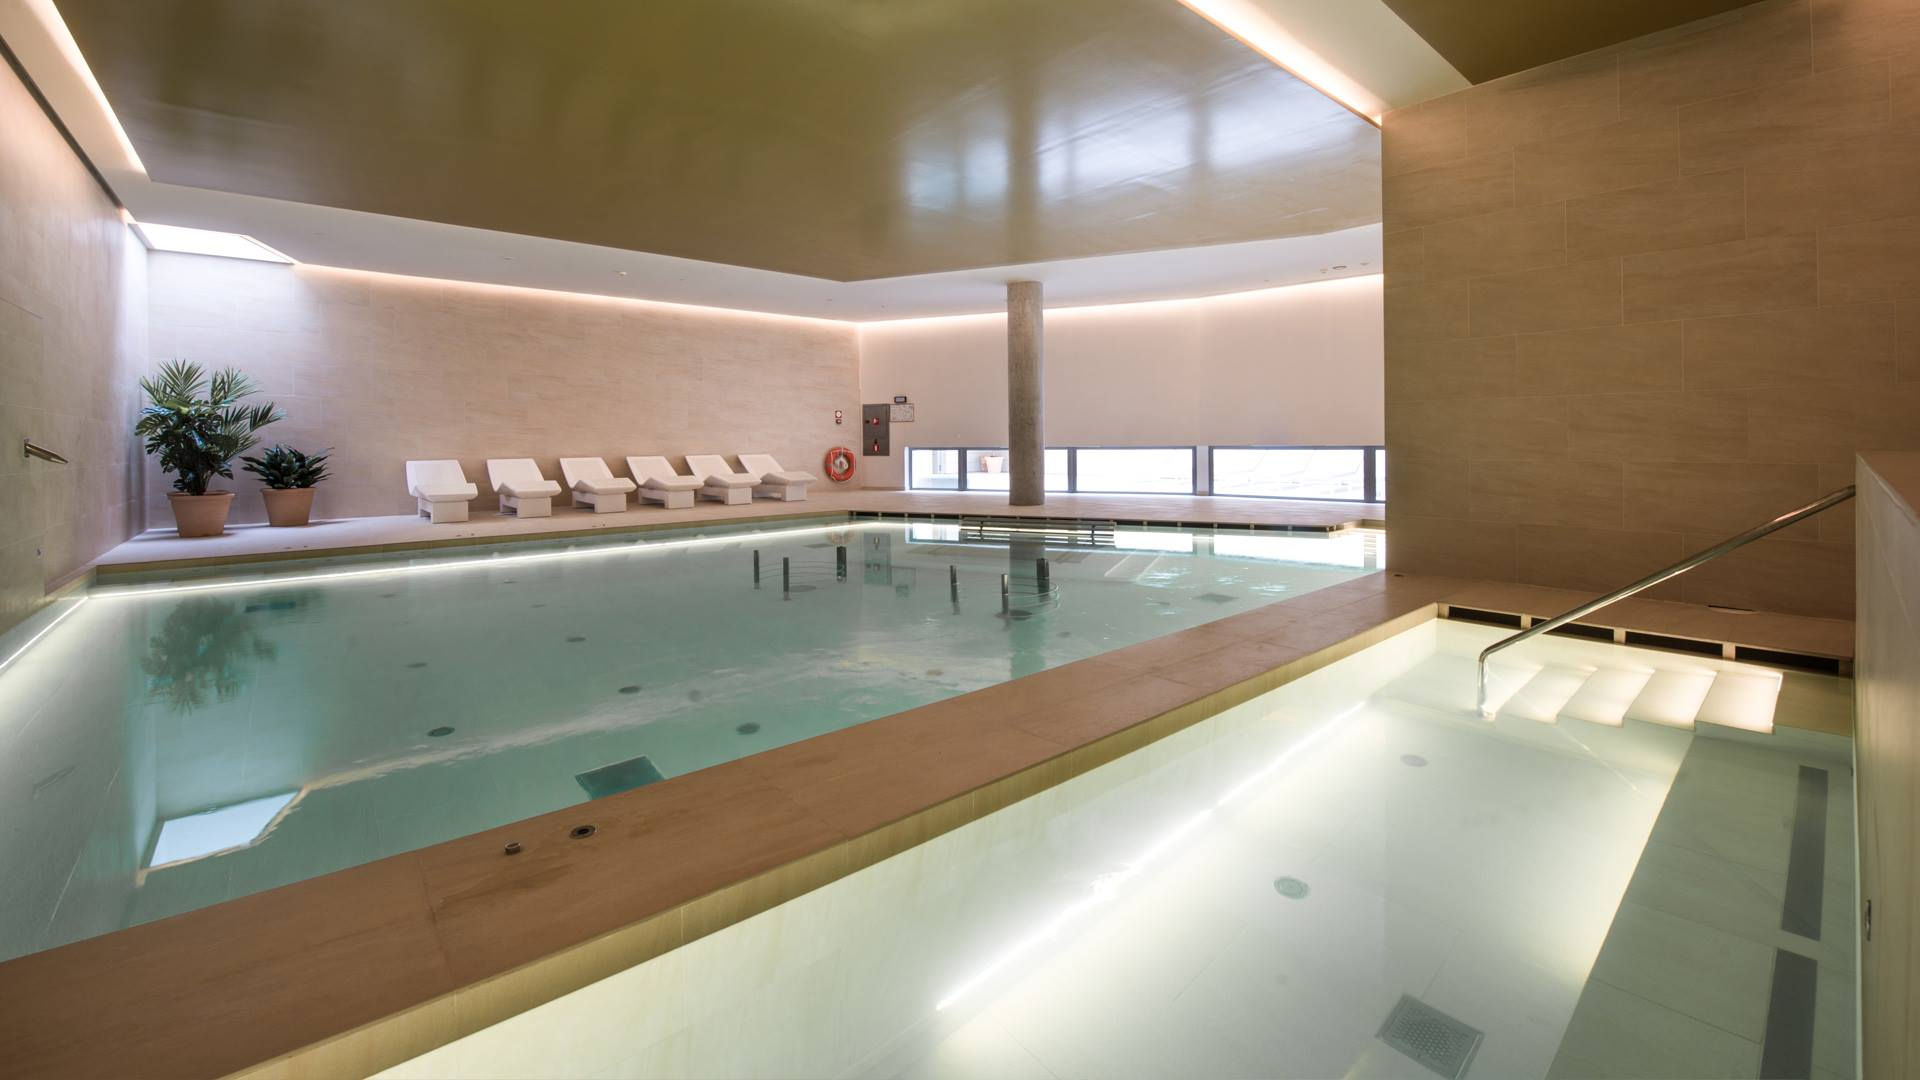 Hotel Llaut Palace - indoor swimming pool and spa - Mallorca